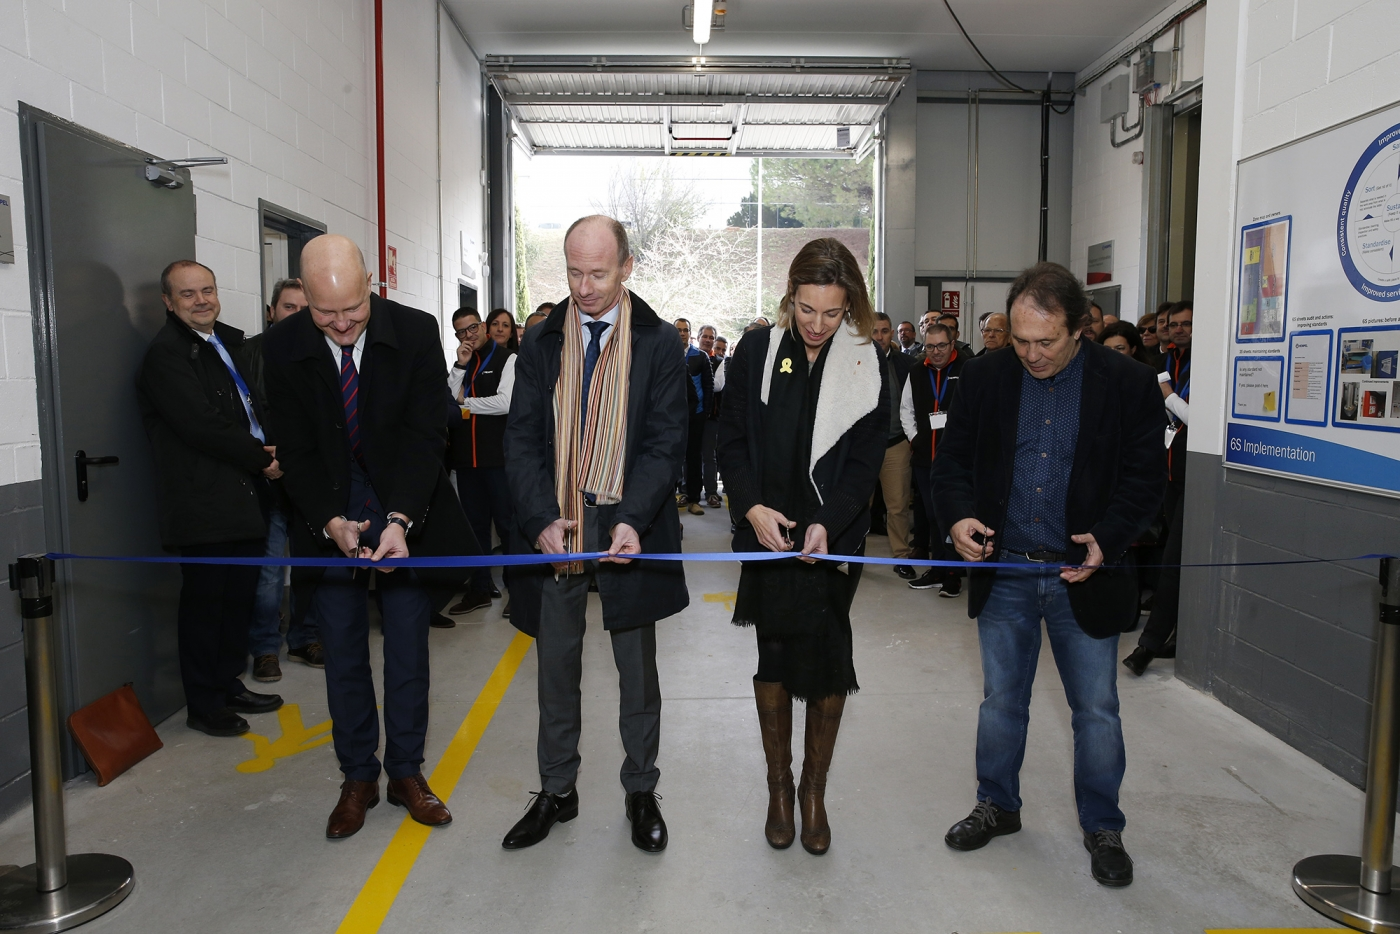 Hempel Opens Center of Excellence in Barcelona